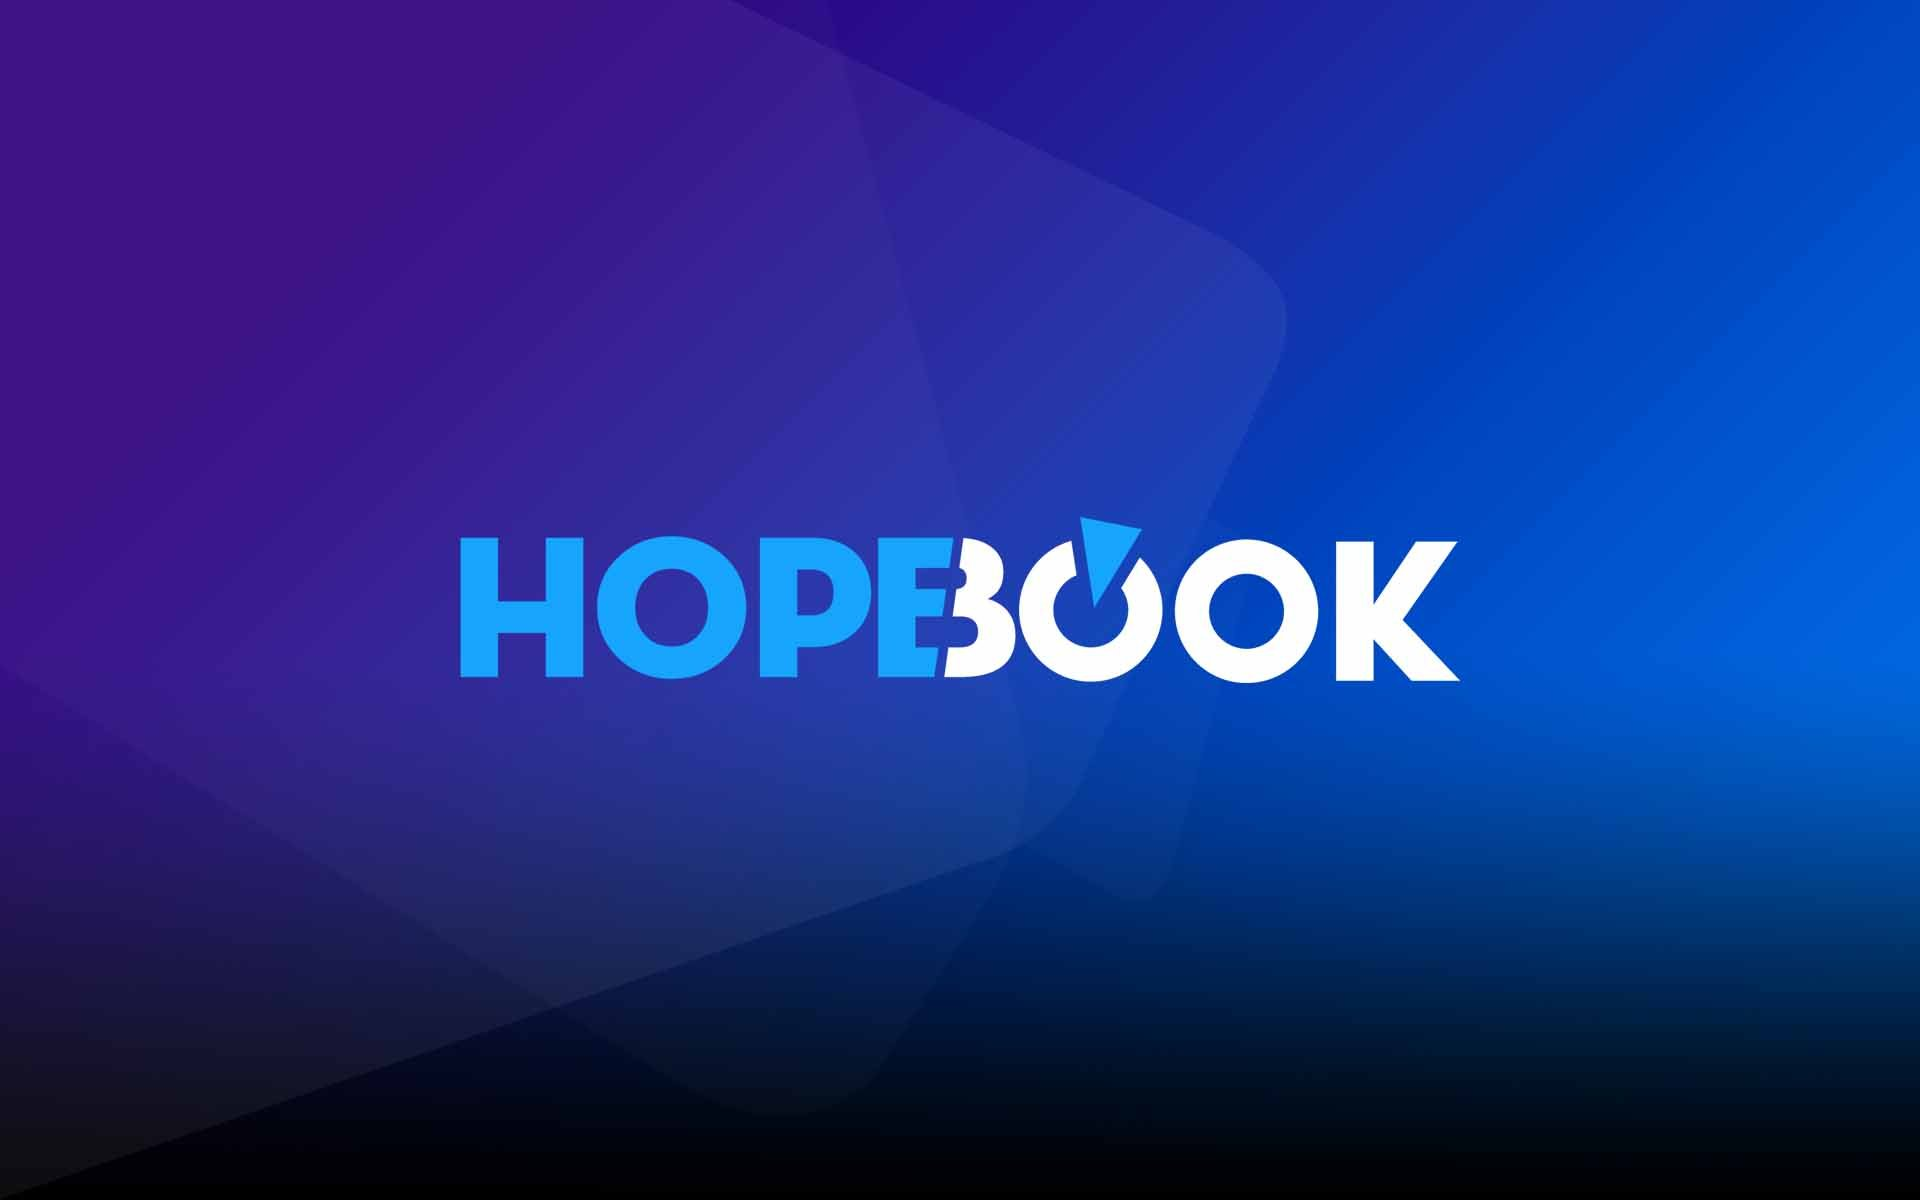 HOPEBOOK Readies For Launch Event – Will Forever Change The Way People Around The World Approach Banking & Finance - The World's Most Transparent Financial Rotation System